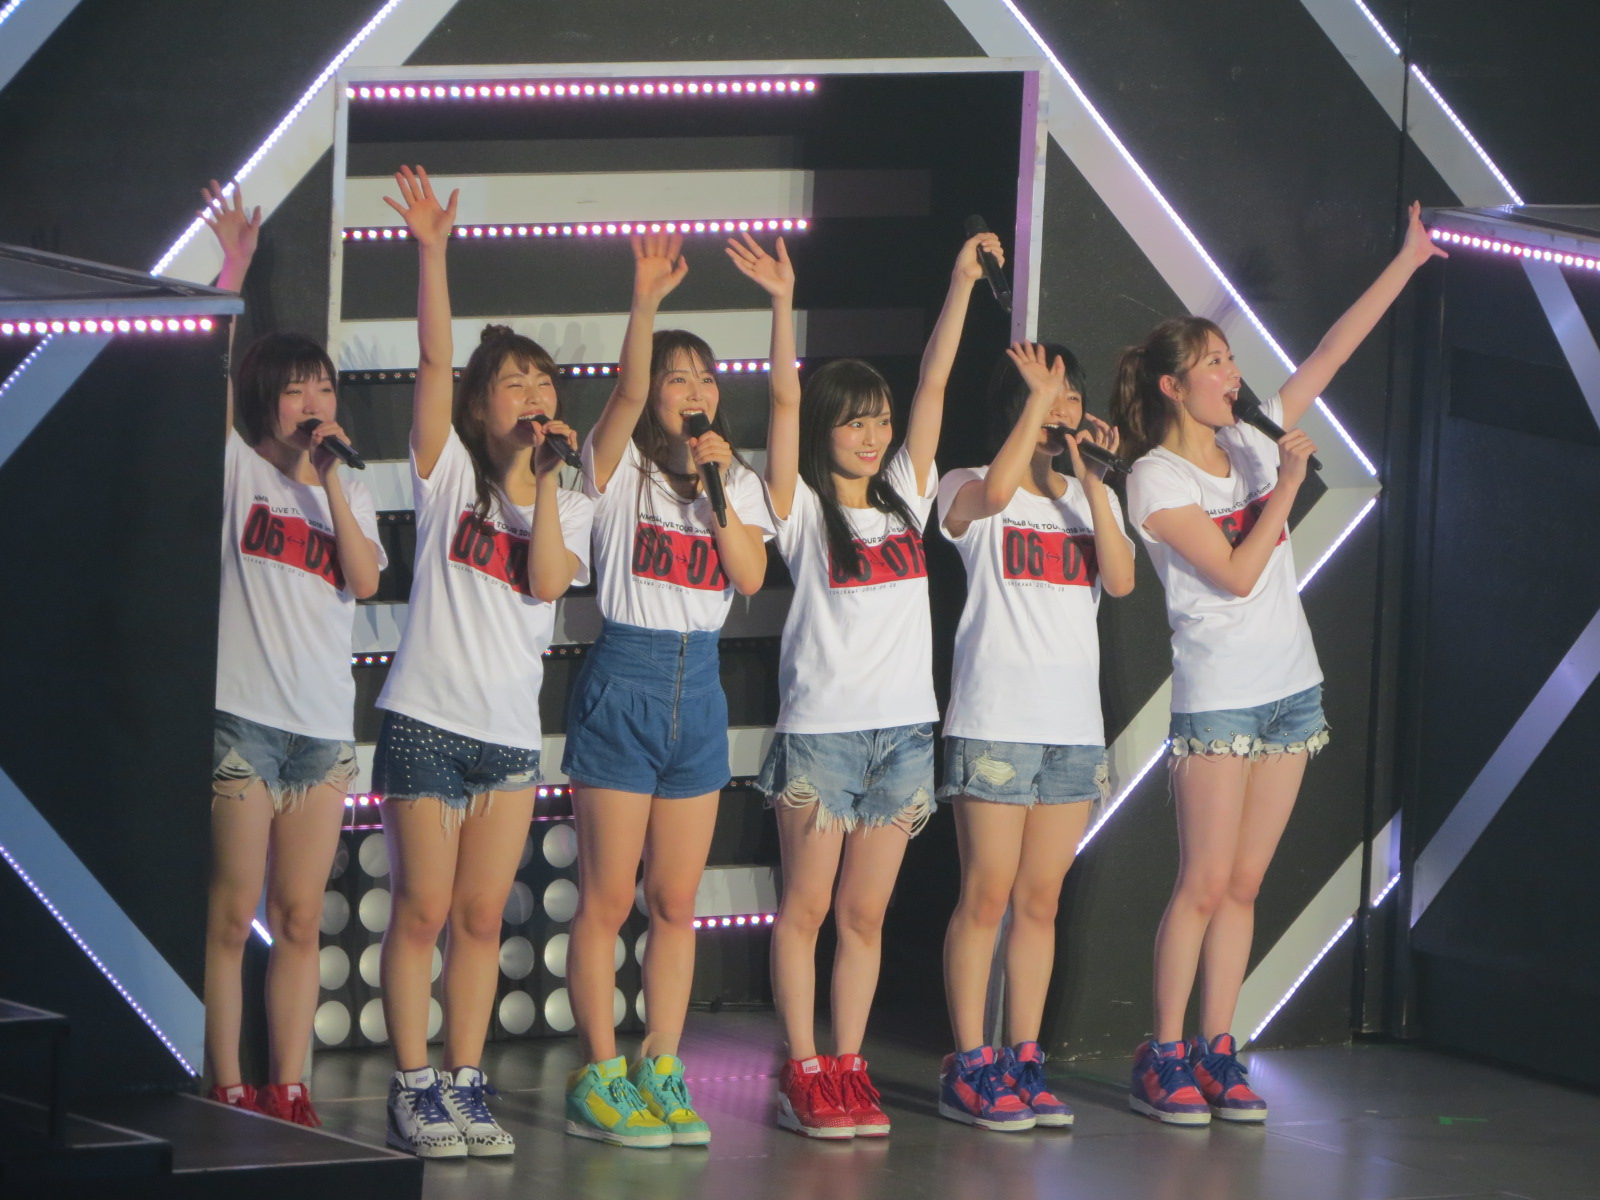 NMB48 LIVE TOUR 2018 in Summer・石川公演の画像-134